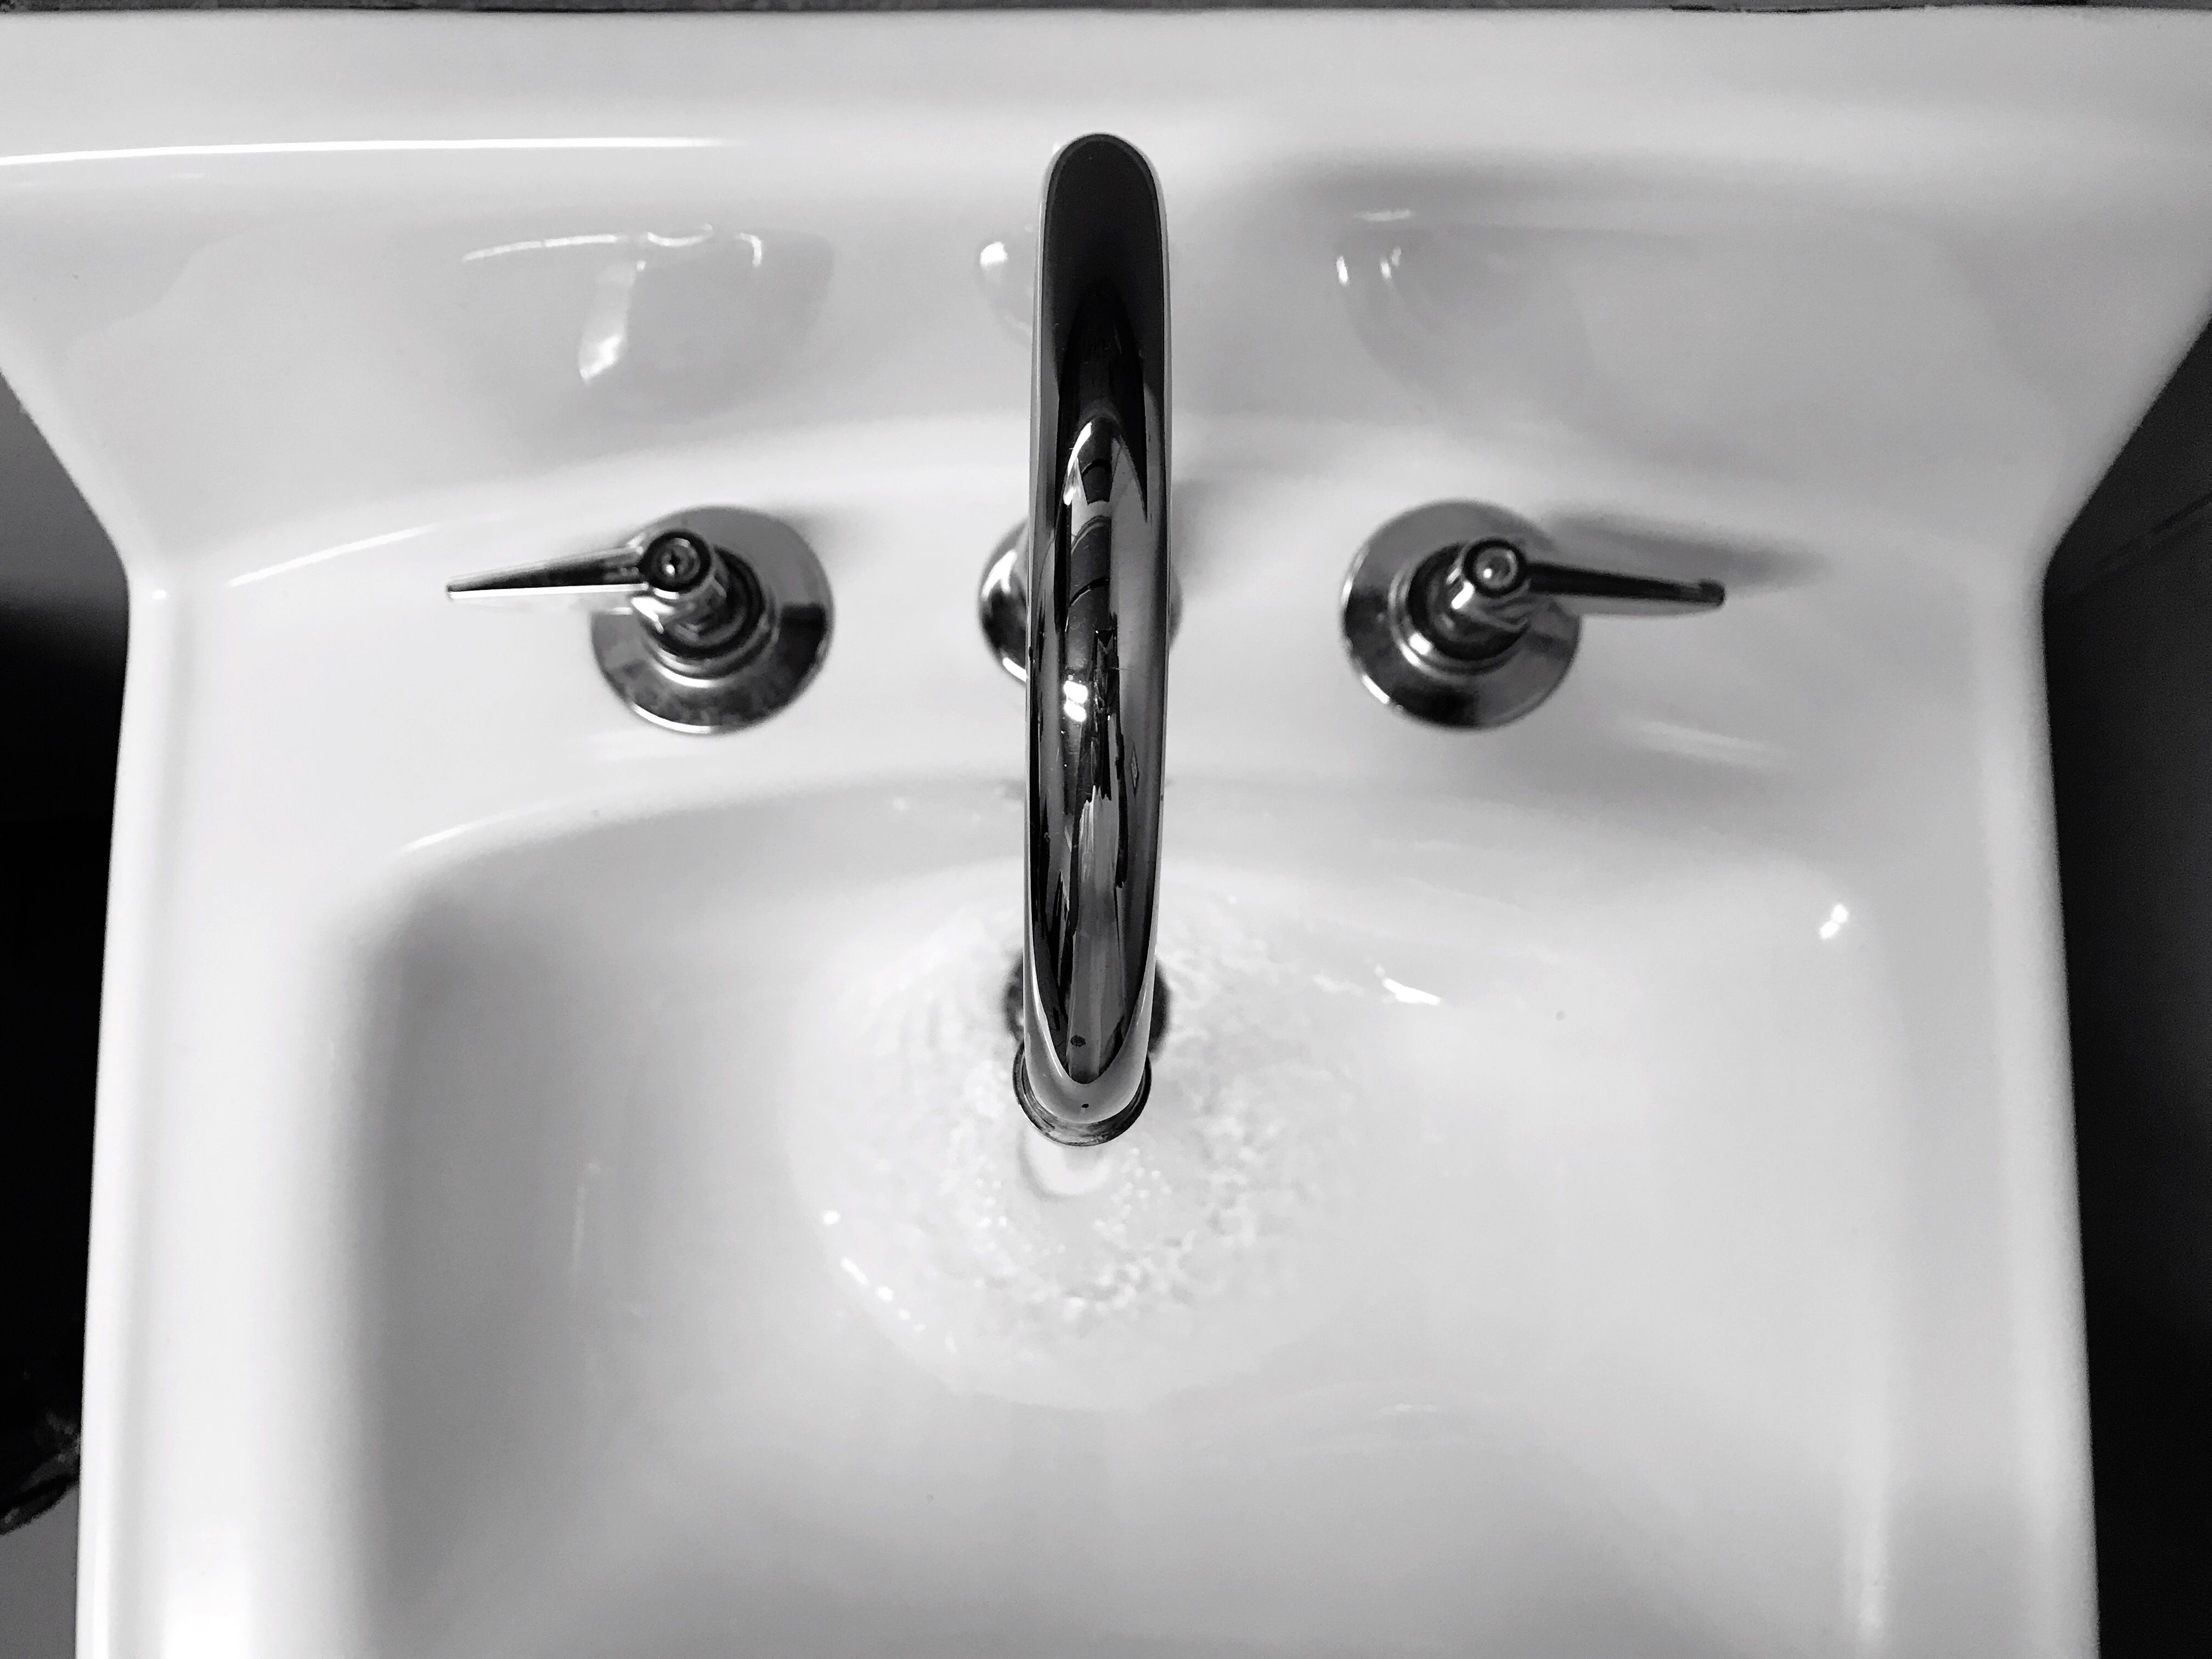 Diy Unclog A Shower Drain In Lala Land Cleaning Hacks Unclog Shower Drains Shower Drain